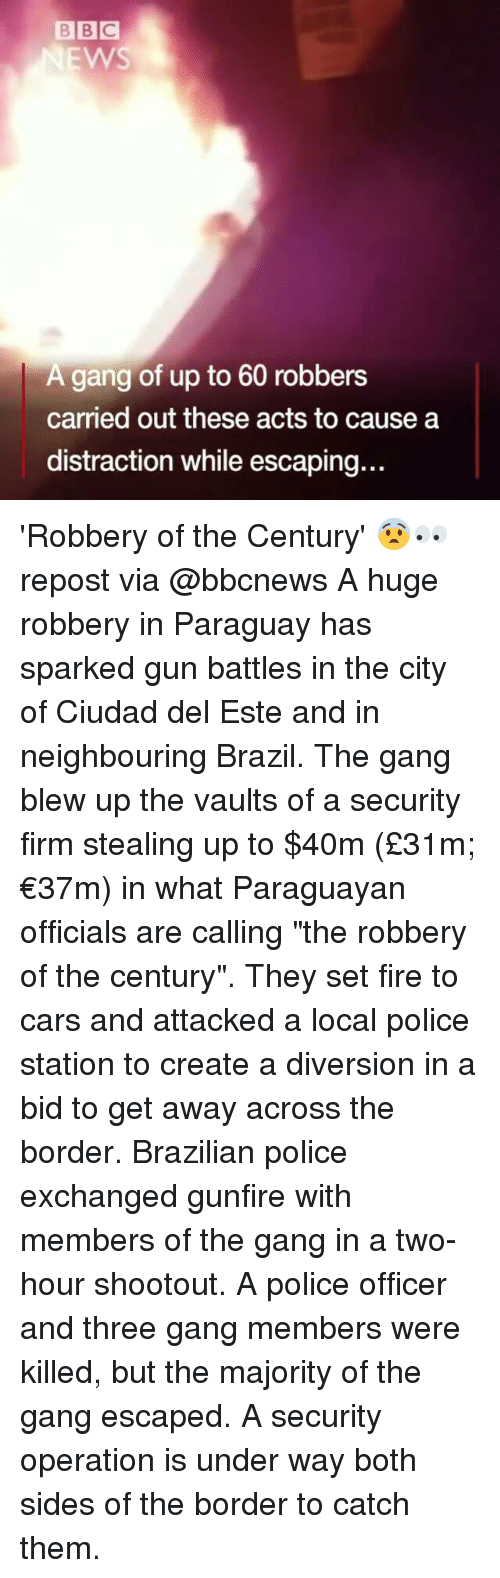 "Cars, Fire, and Memes: BBC  EWS  A gang of up to 60 robbers  carried out these acts to cause a  distraction while escaping.. 'Robbery of the Century' 😨👀 repost via @bbcnews A huge robbery in Paraguay has sparked gun battles in the city of Ciudad del Este and in neighbouring Brazil. The gang blew up the vaults of a security firm stealing up to $40m (£31m; €37m) in what Paraguayan officials are calling ""the robbery of the century"". They set fire to cars and attacked a local police station to create a diversion in a bid to get away across the border. Brazilian police exchanged gunfire with members of the gang in a two-hour shootout. A police officer and three gang members were killed, but the majority of the gang escaped. A security operation is under way both sides of the border to catch them."